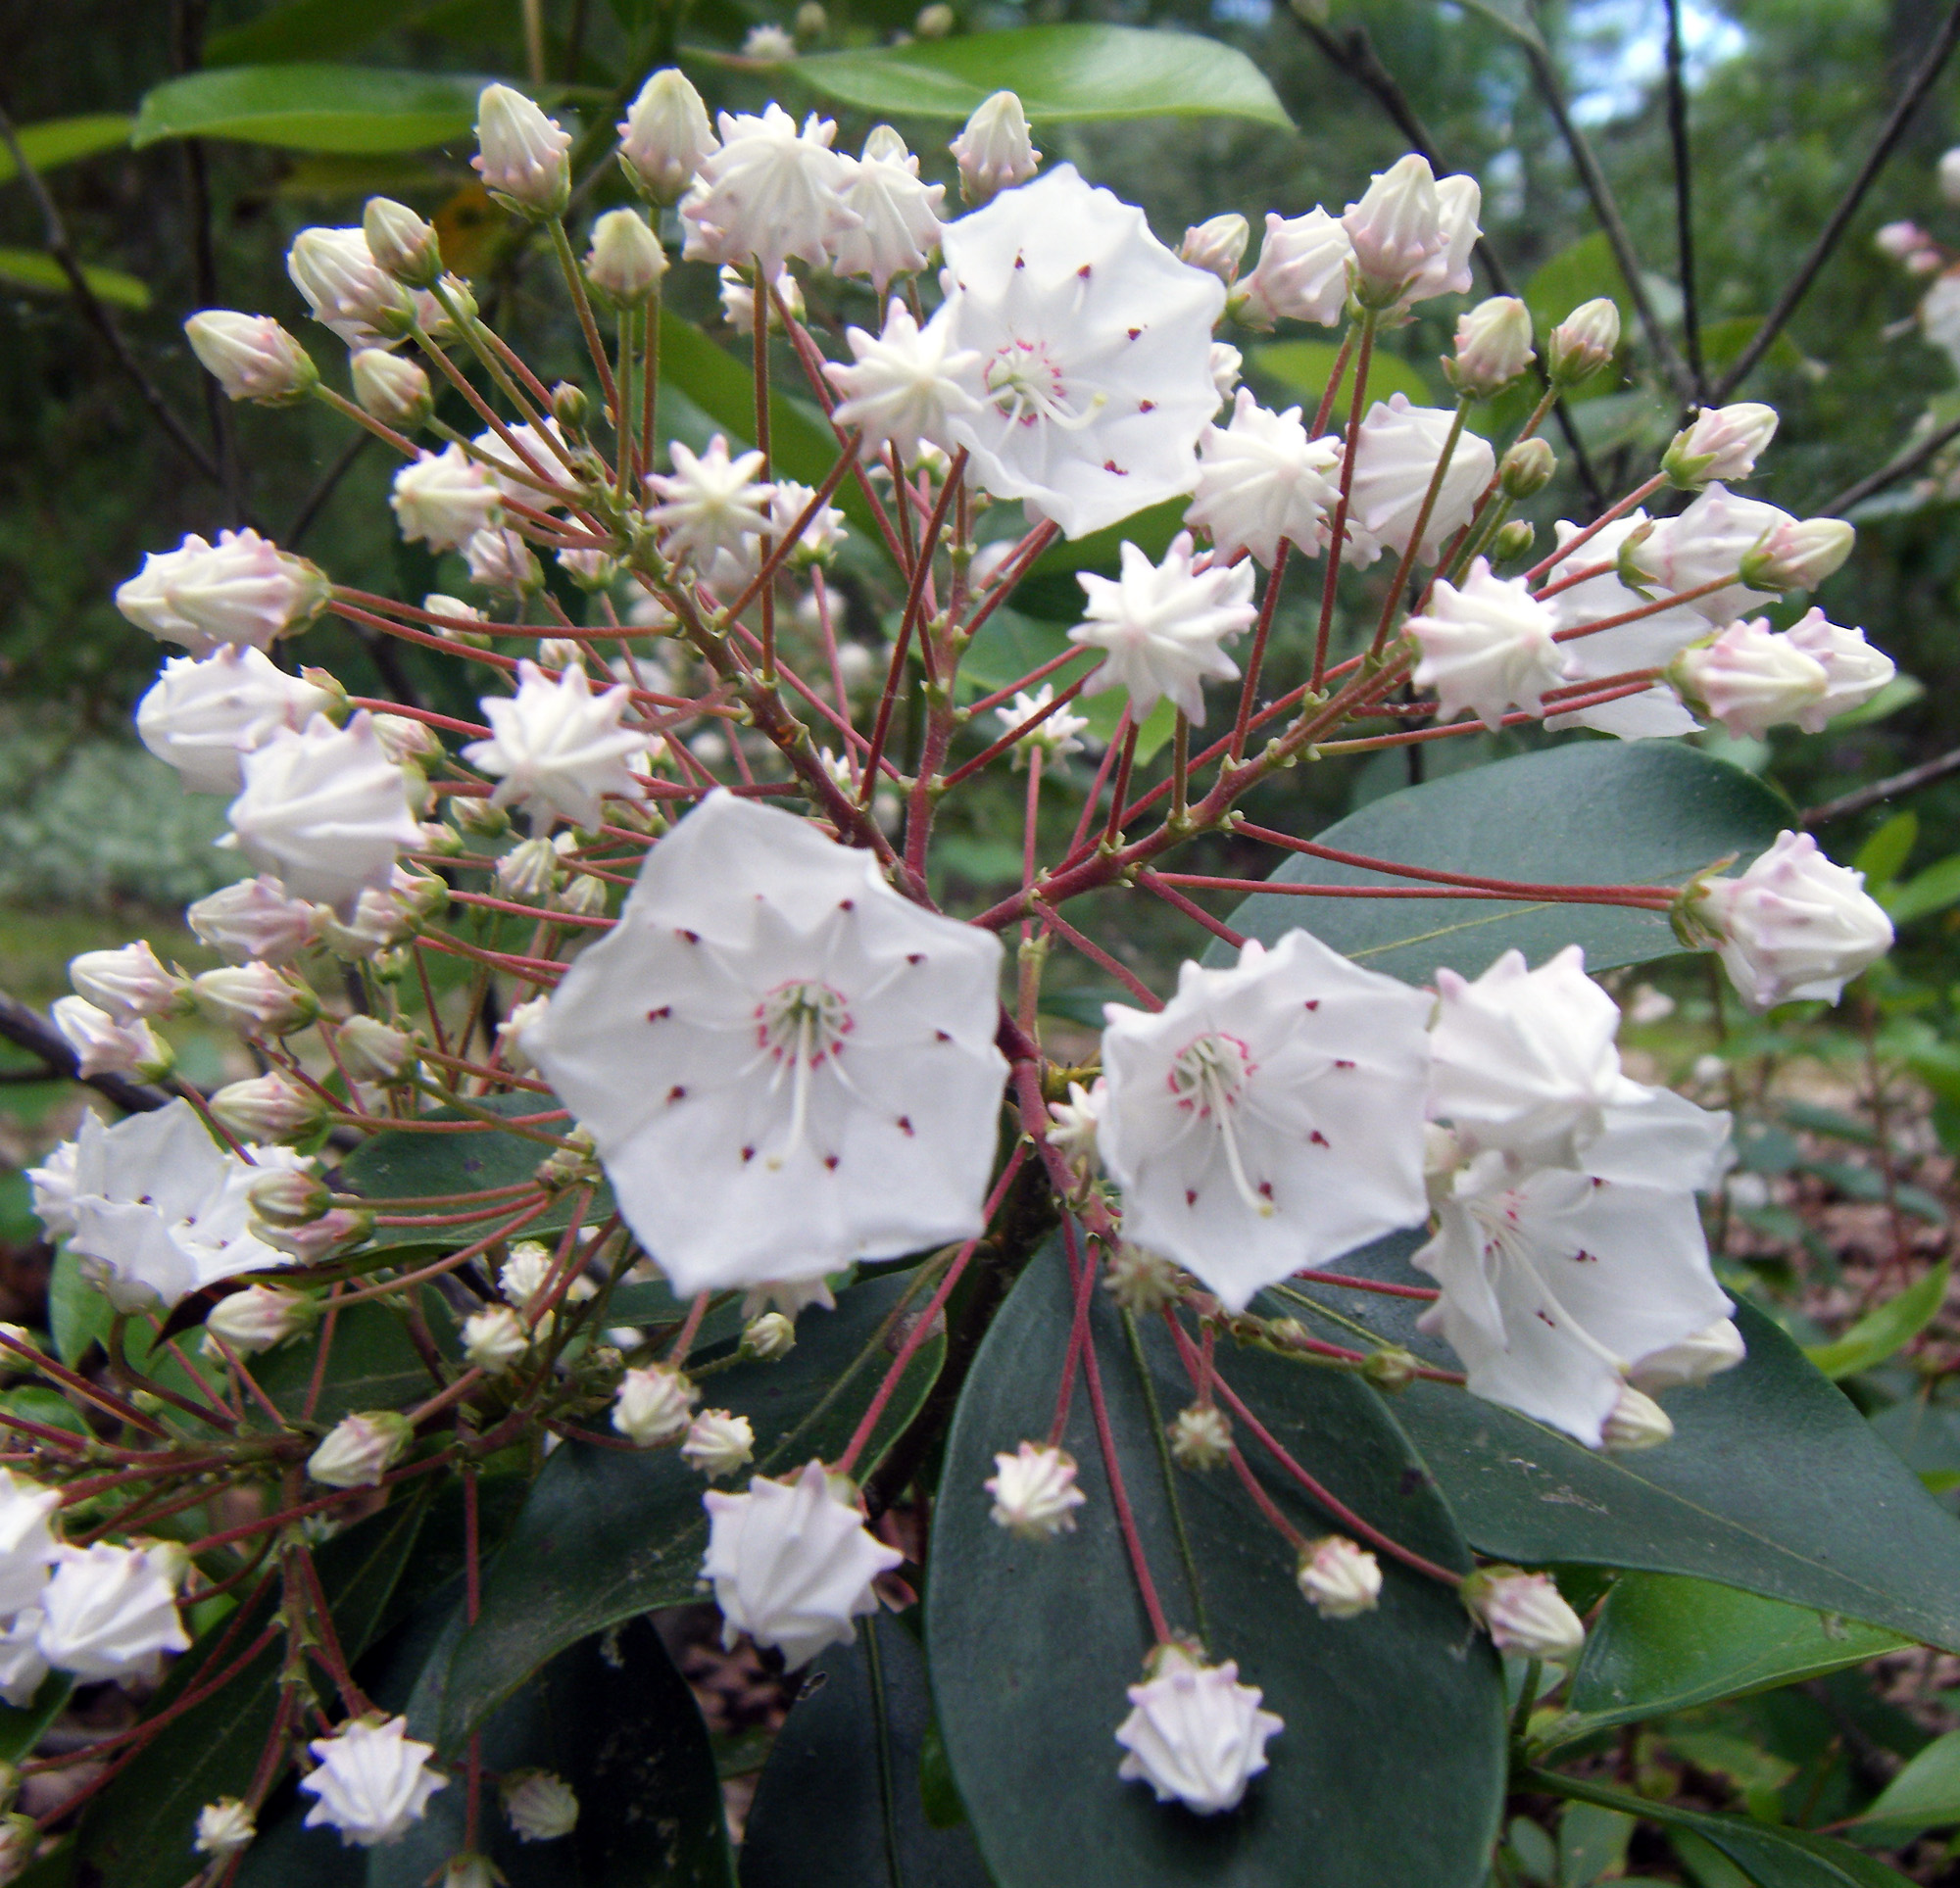 Montain Laurel Is One Of Our Most Lovely Native Shrubs Especially When It  Flowers In Late Spring